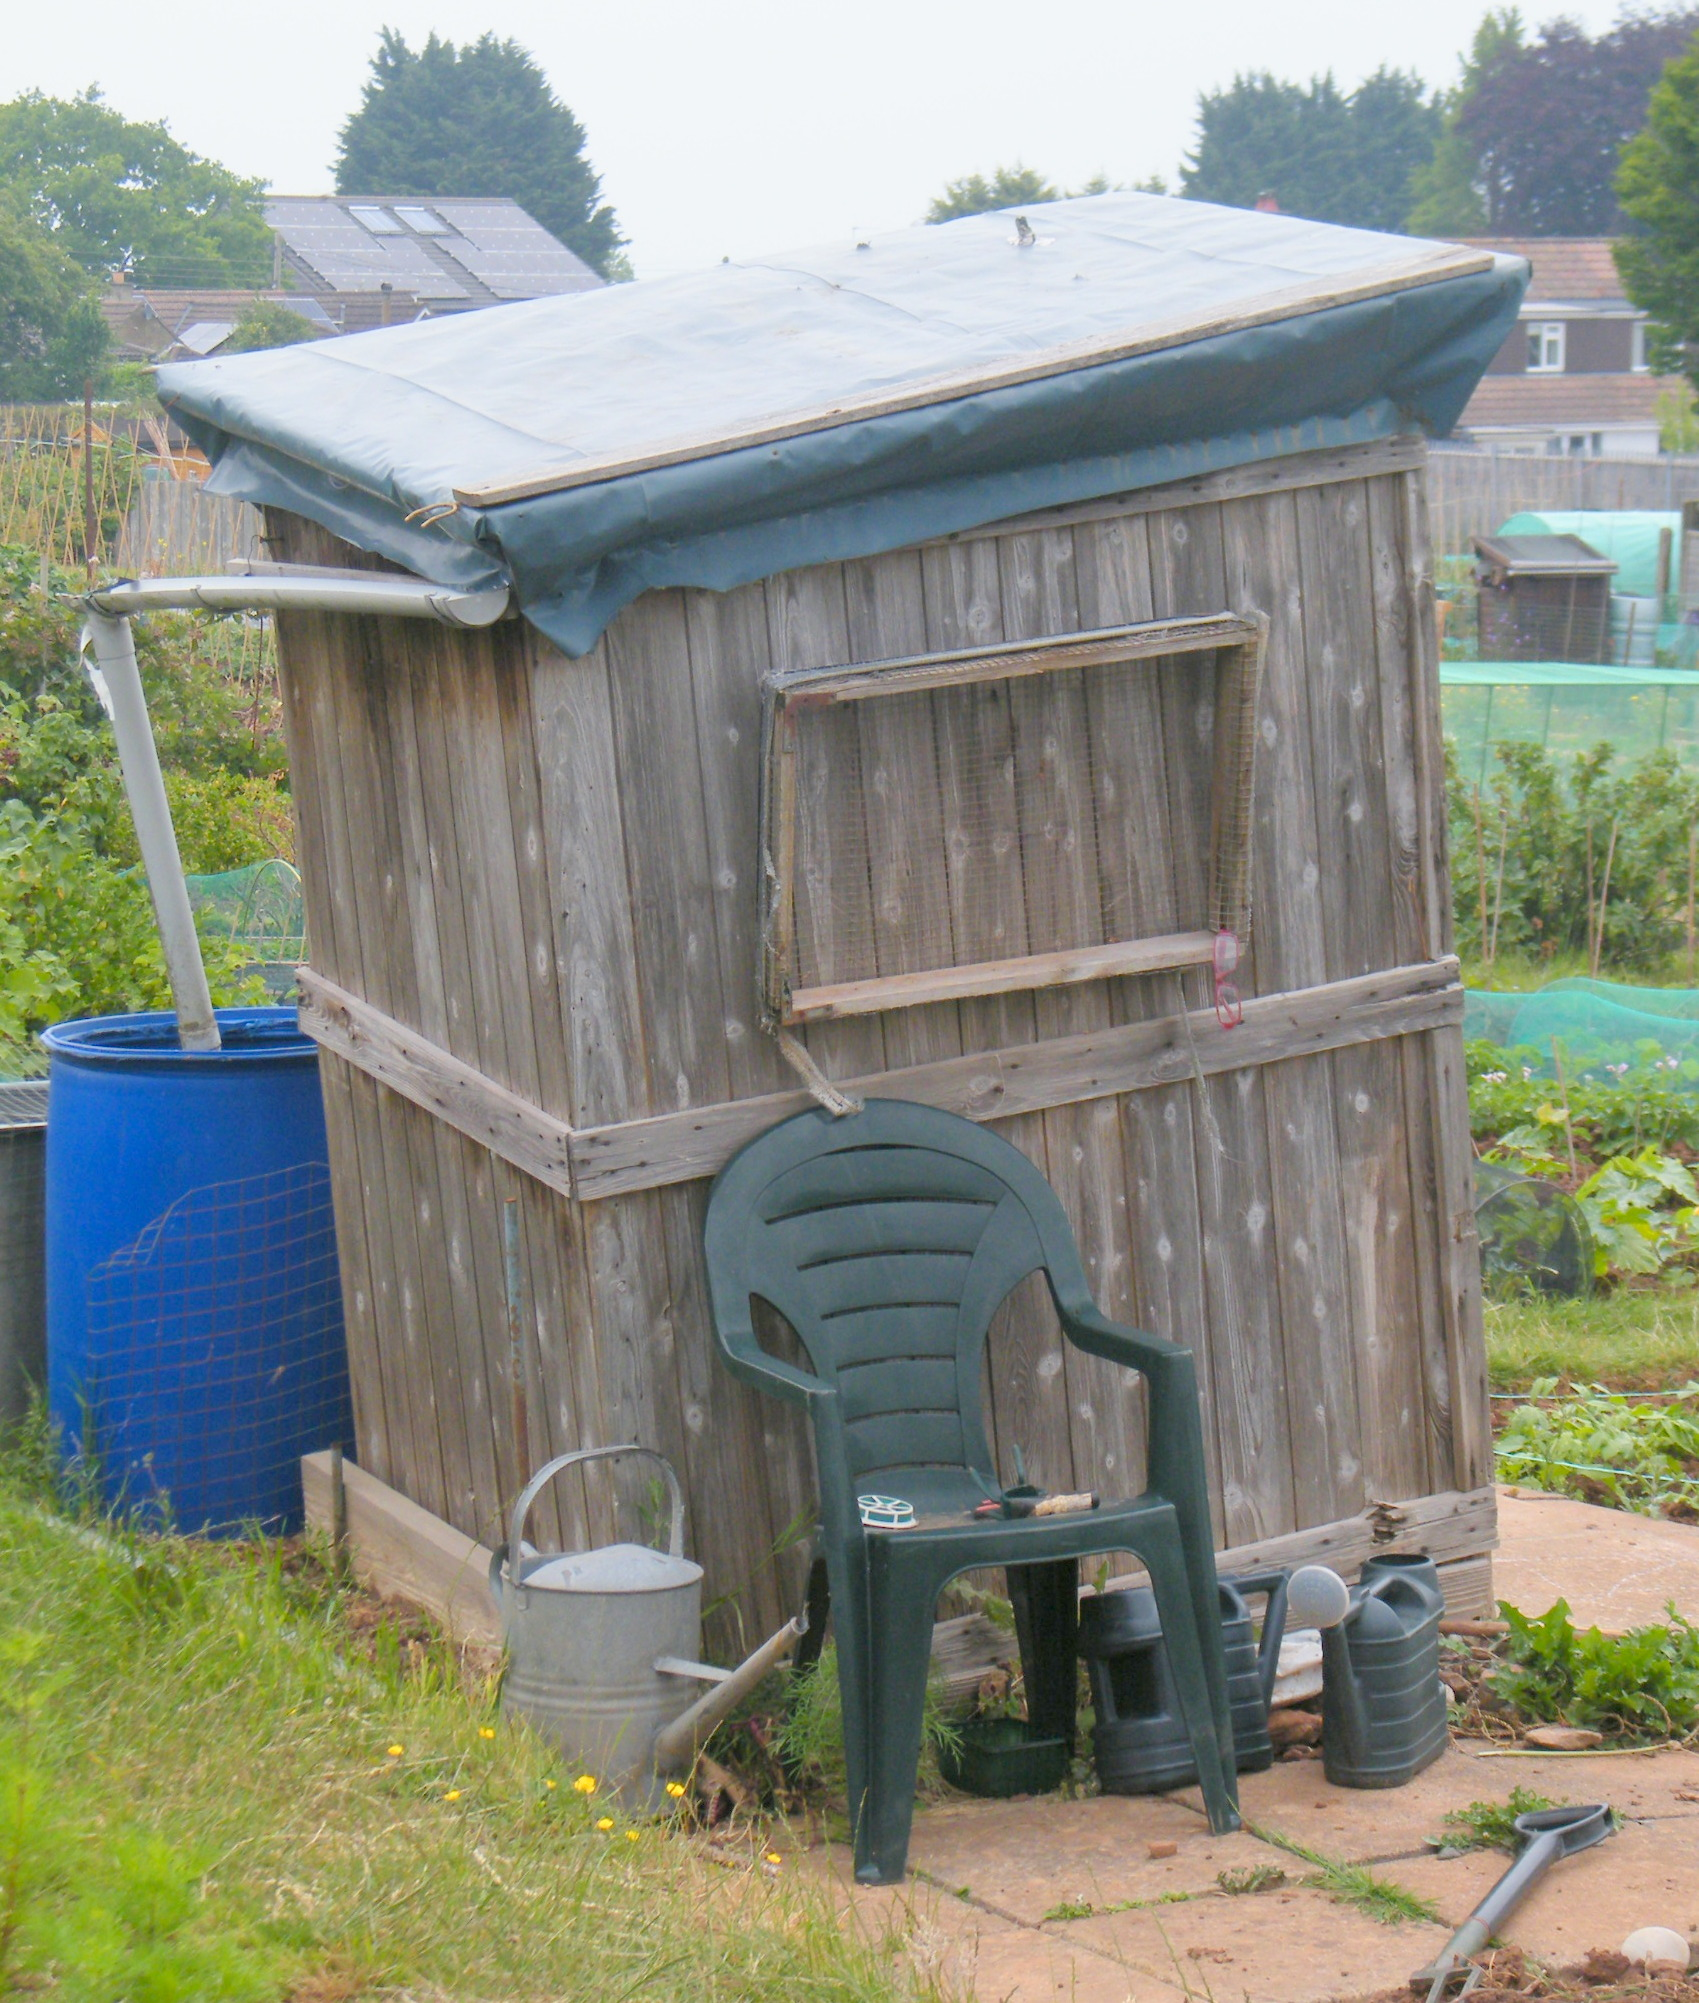 The leaning shed of Portishead